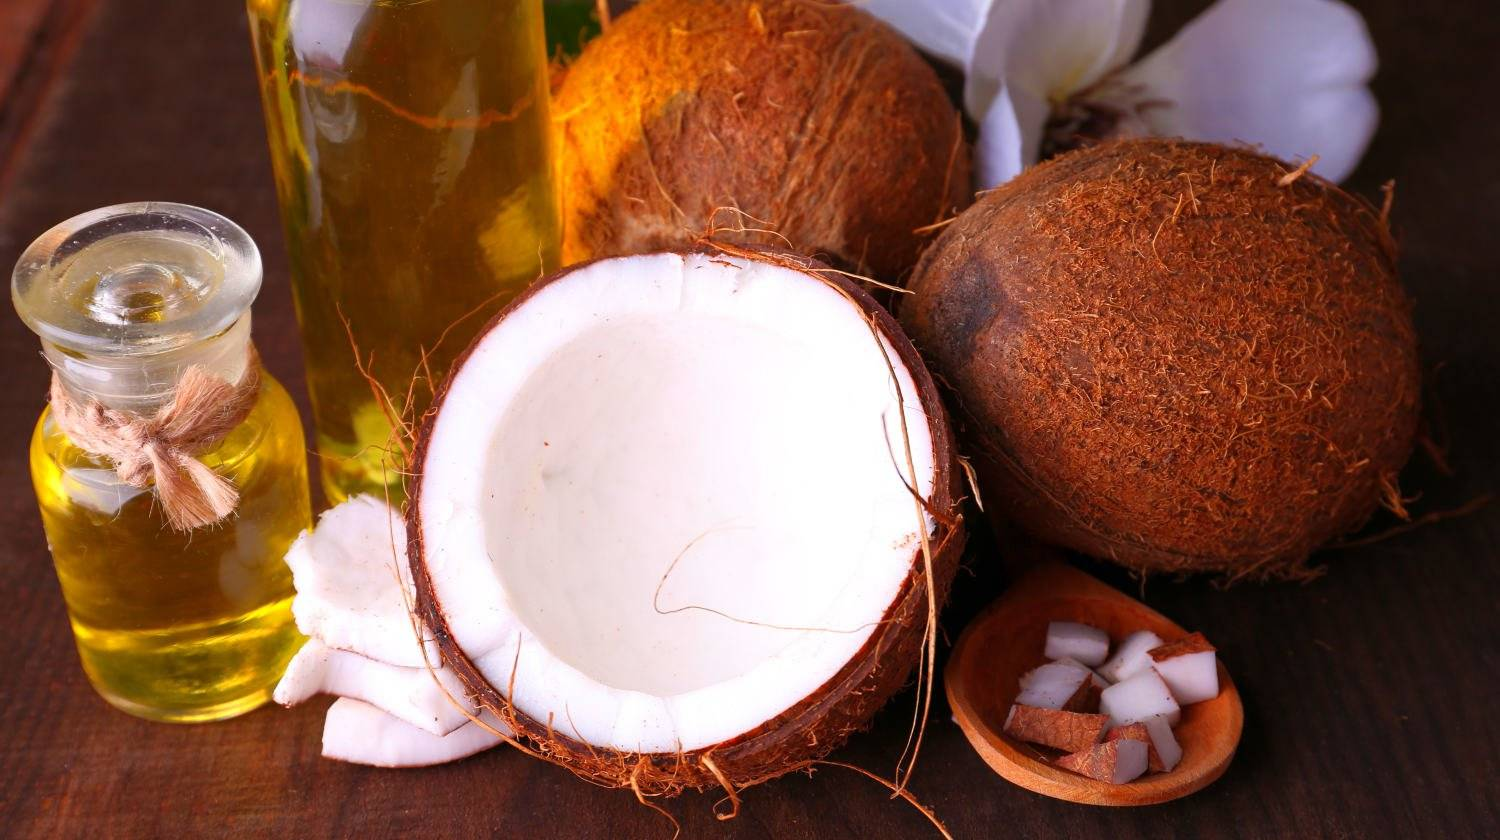 Coconuts and coconut oil on wooden table | The Best Uses For Coconut Oil For Health And Wellness | coconut oil uses | uses of coconut oil | Featured